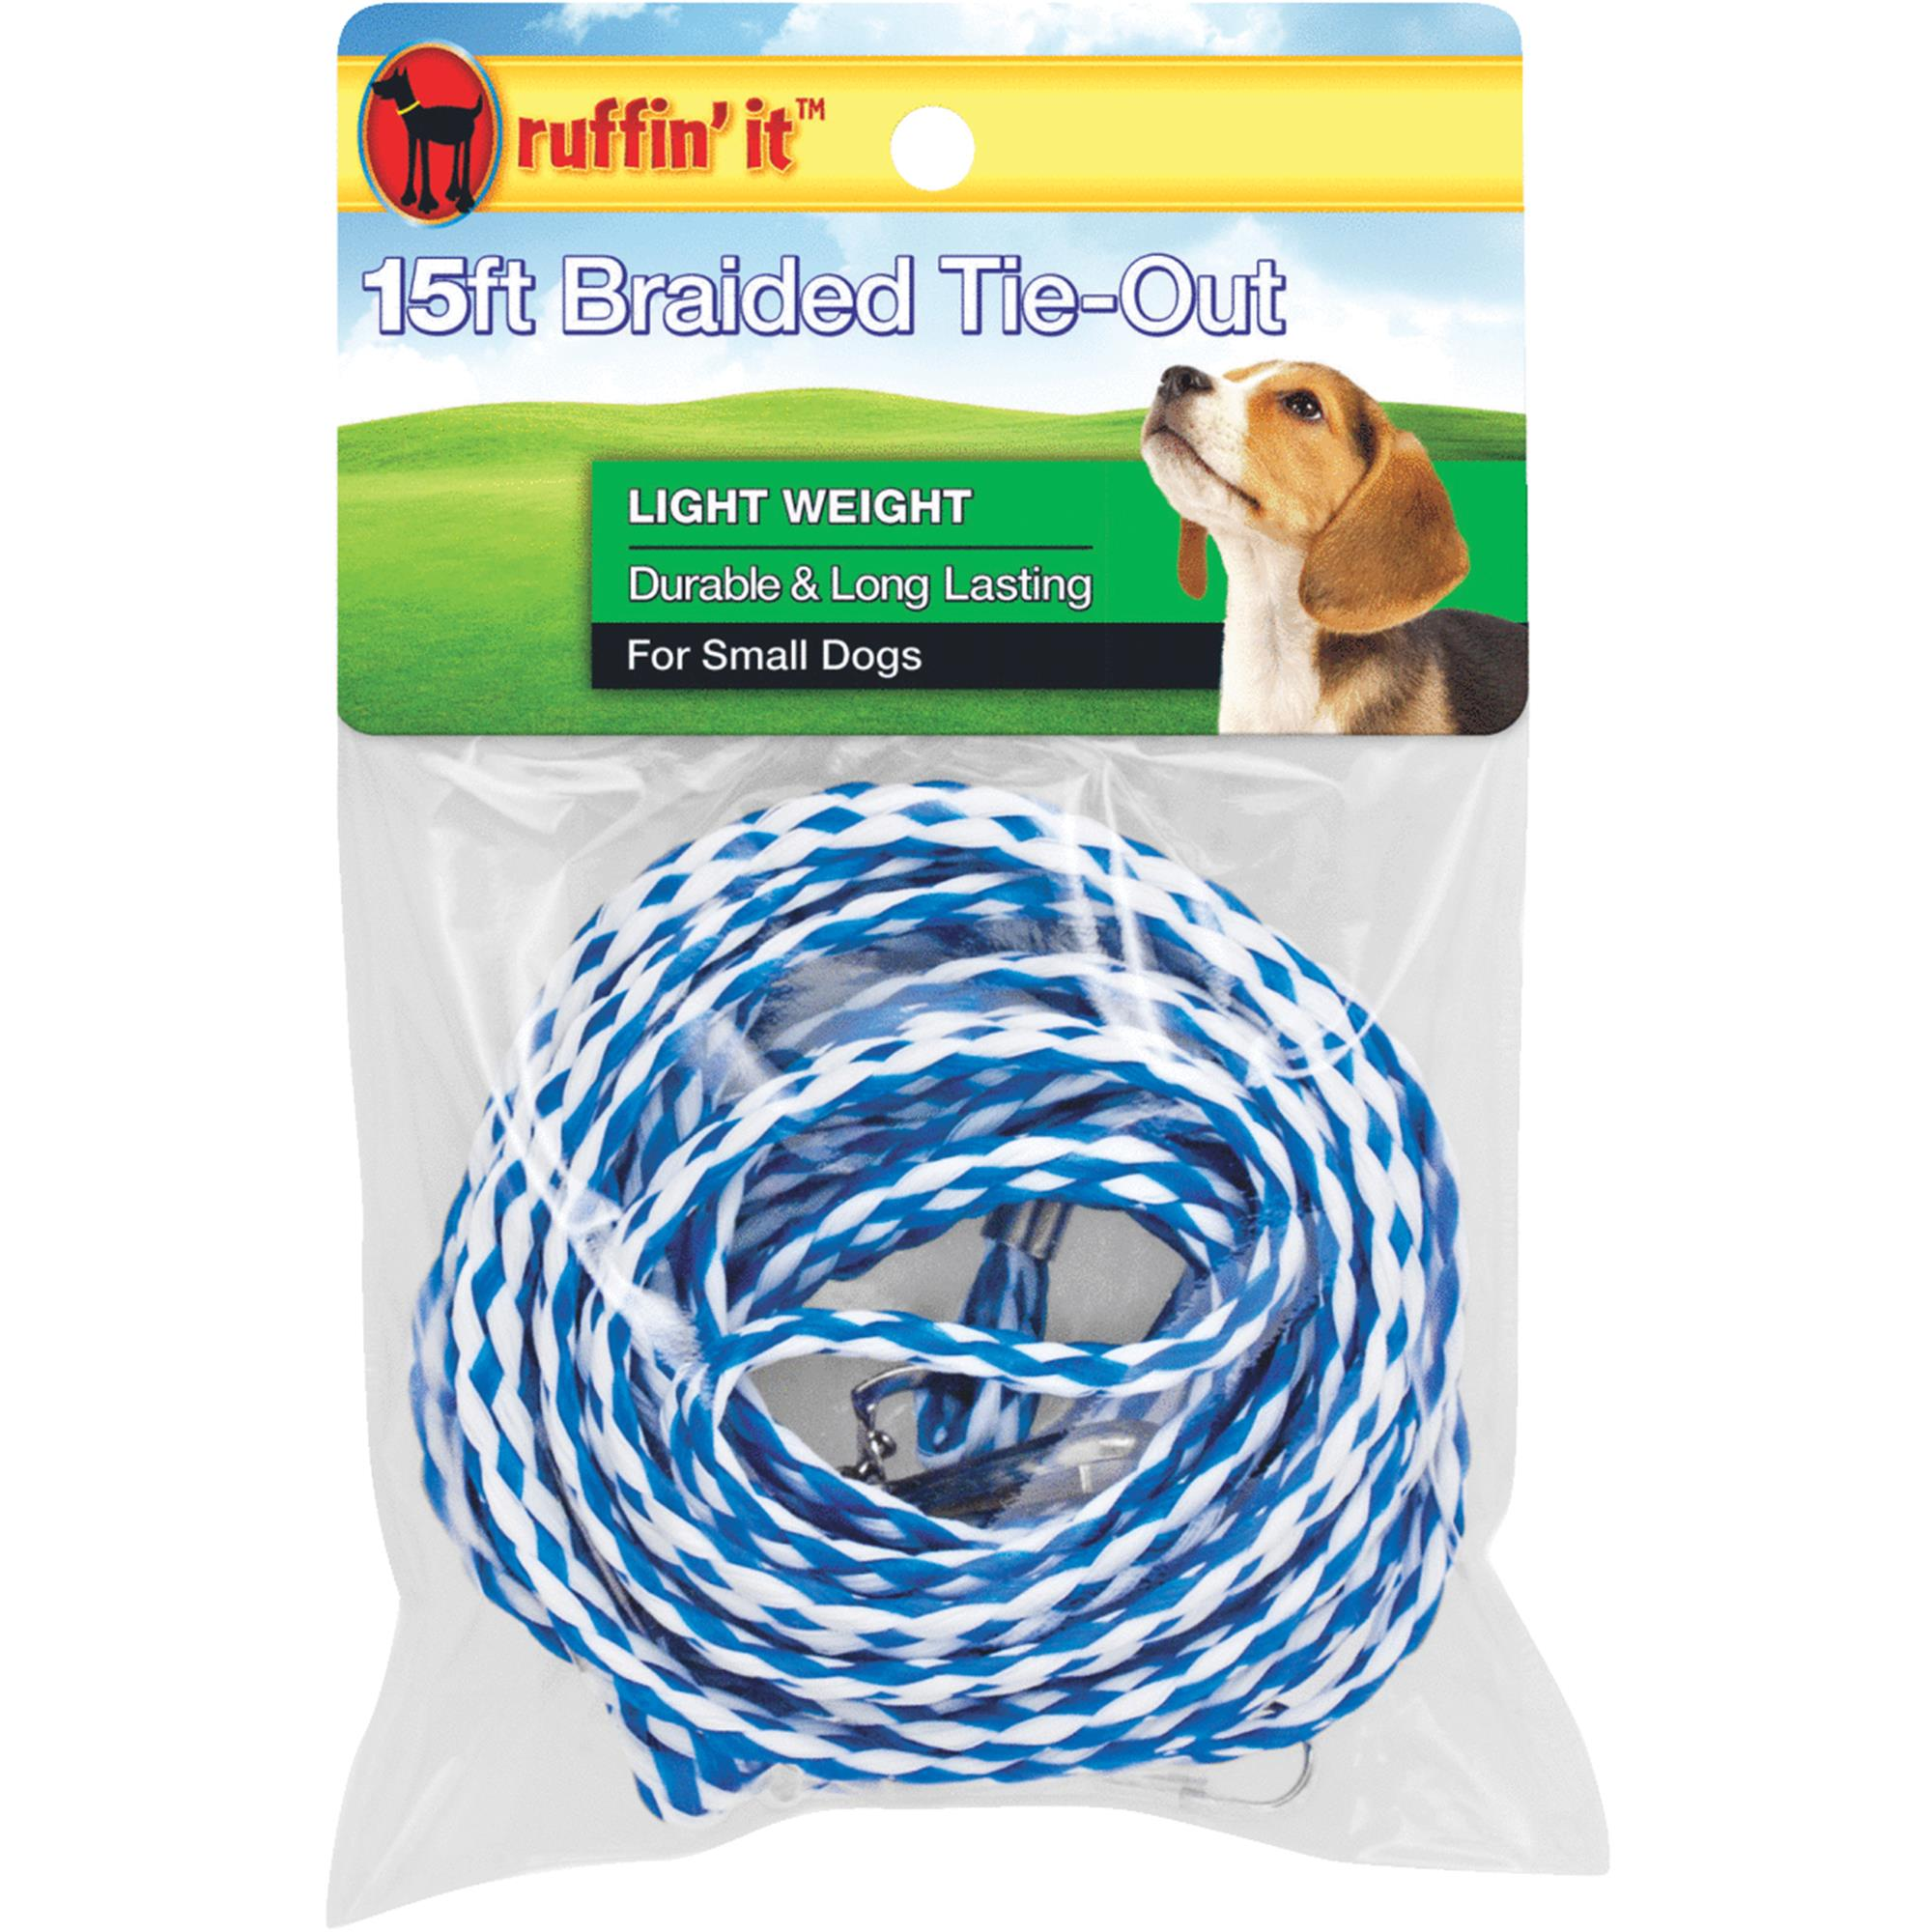 Westminster Pet Ruffin' it Light Weight Dog Tie-Out Braided Rope